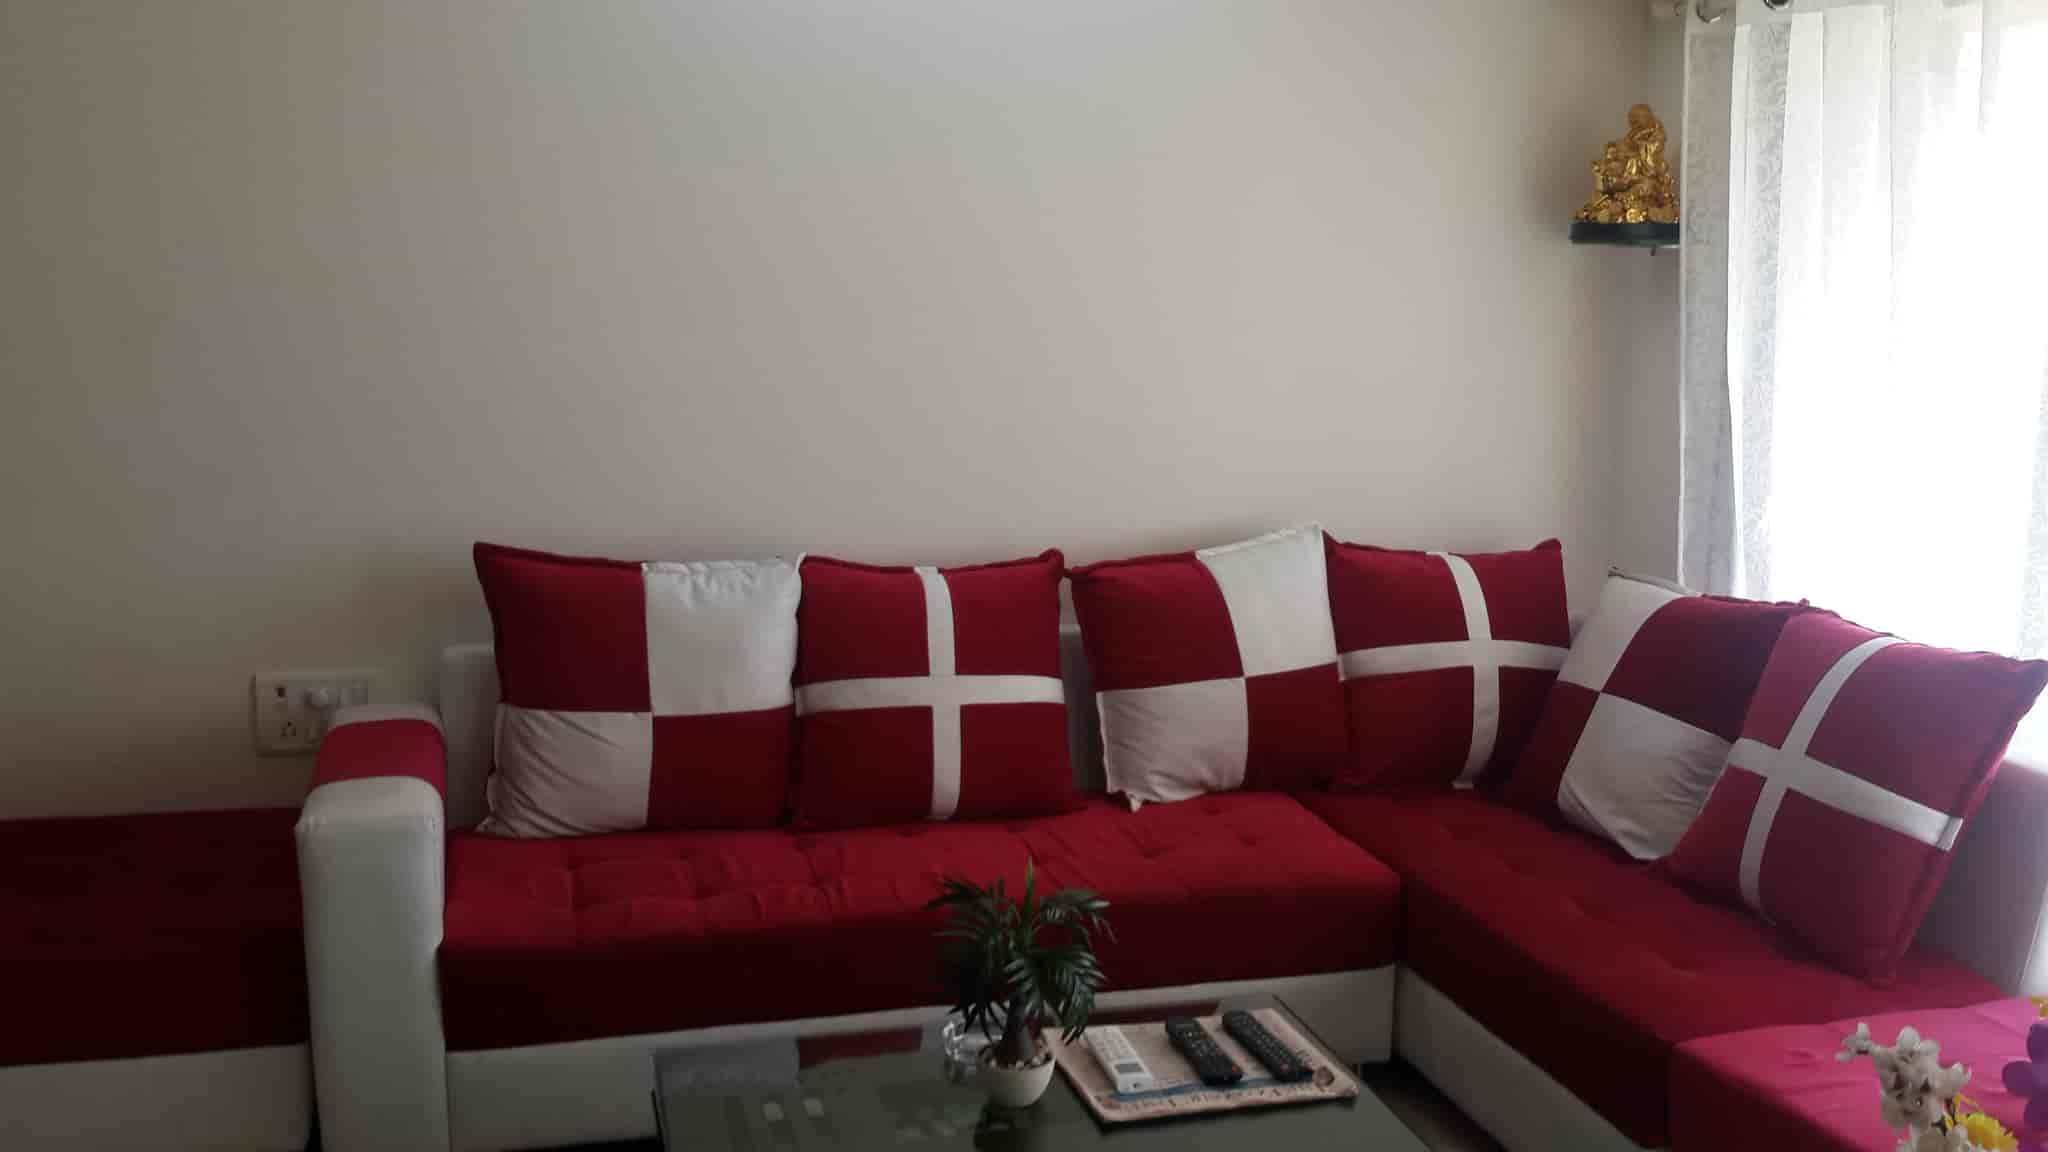 ... Living Room   Indra Paying Guest Guest House Photos, Kandivali East,  Mumbai   Paying ...